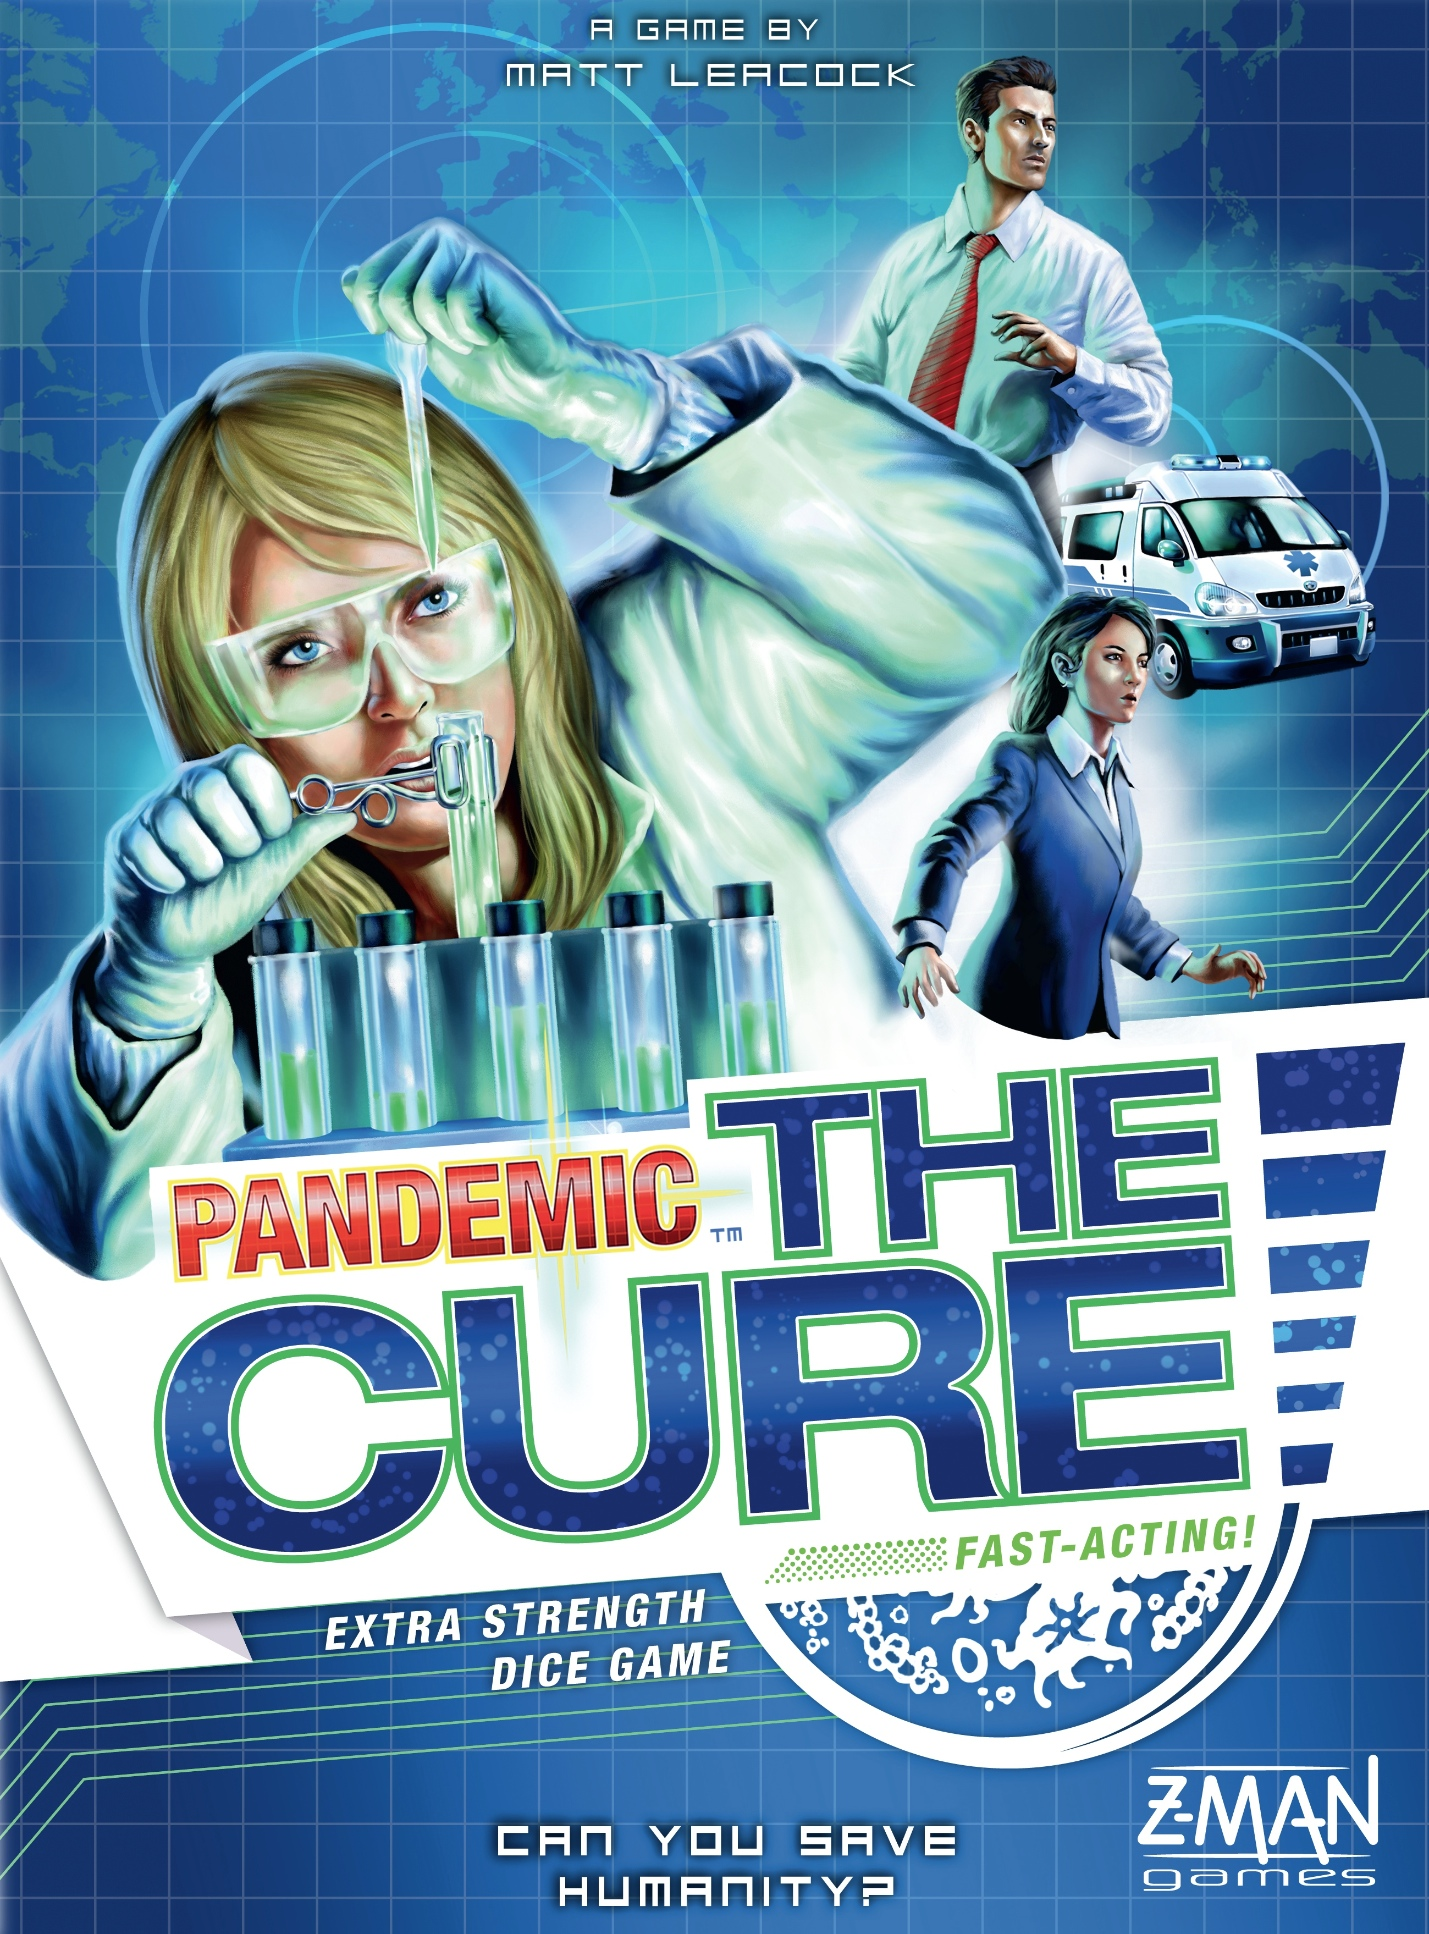 Pandemic Pics, Game Collection